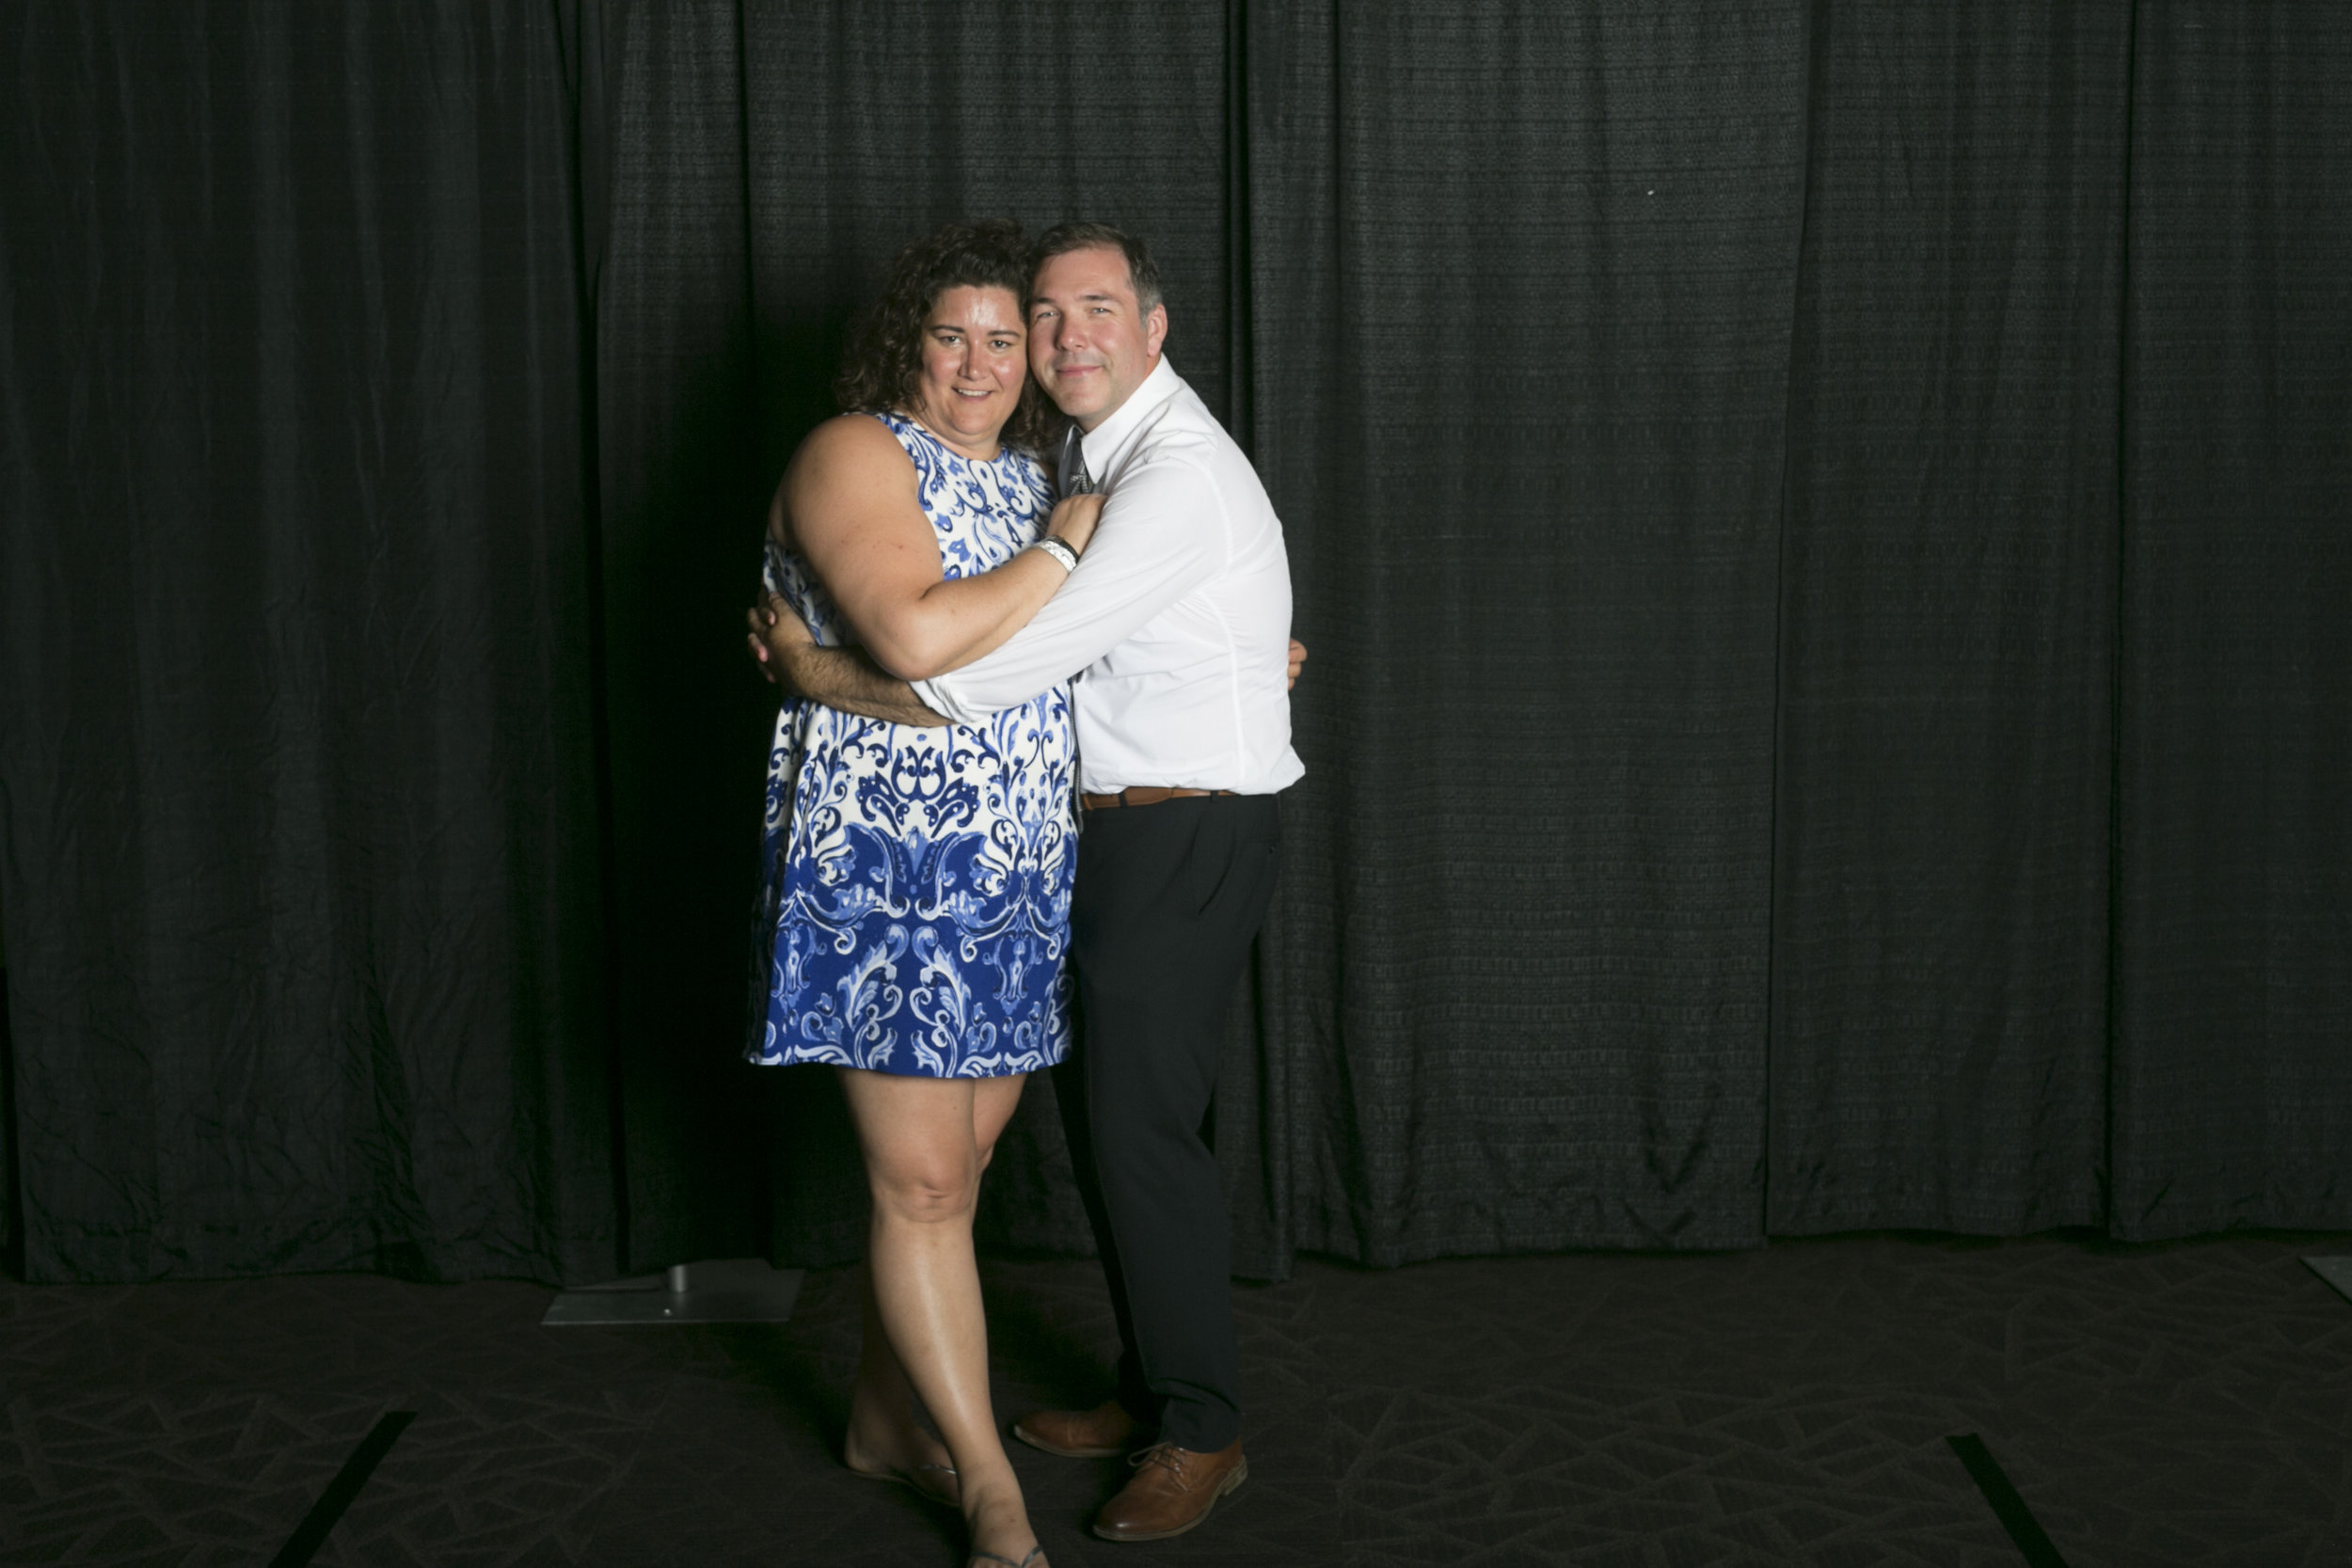 wedding photo booth-98.jpg